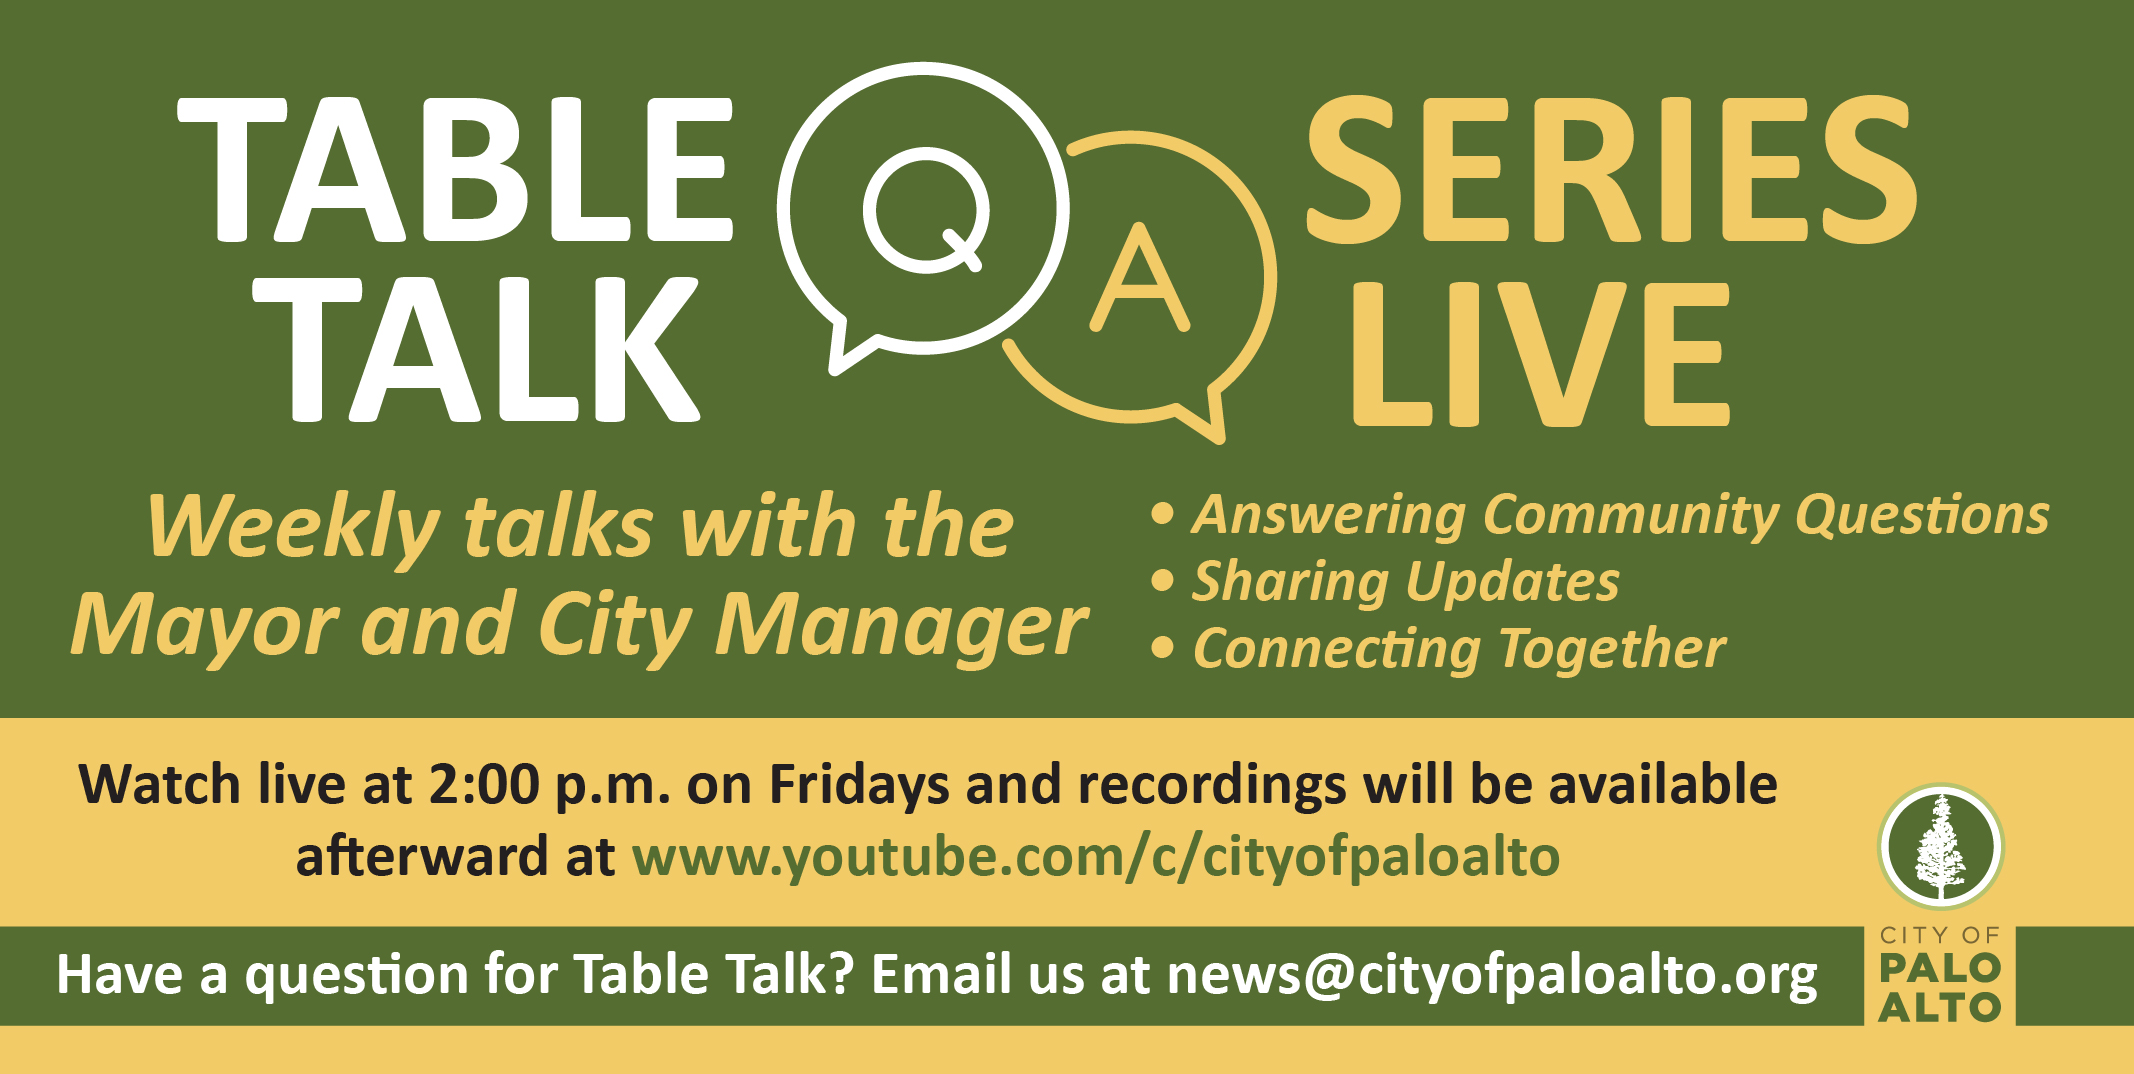 Table Talk with Adrian and Ed will be live on YouTube starting at 2 p.m. every Friday while Shelter in Place is in effect. They will be answering some FAQs received from the Community Support Call Center and the non-emergency Police Dispatch Center. If you have further questions that you would like the Mayor and the City Manager answer, send them by email to news@cityofpaloalto.org.